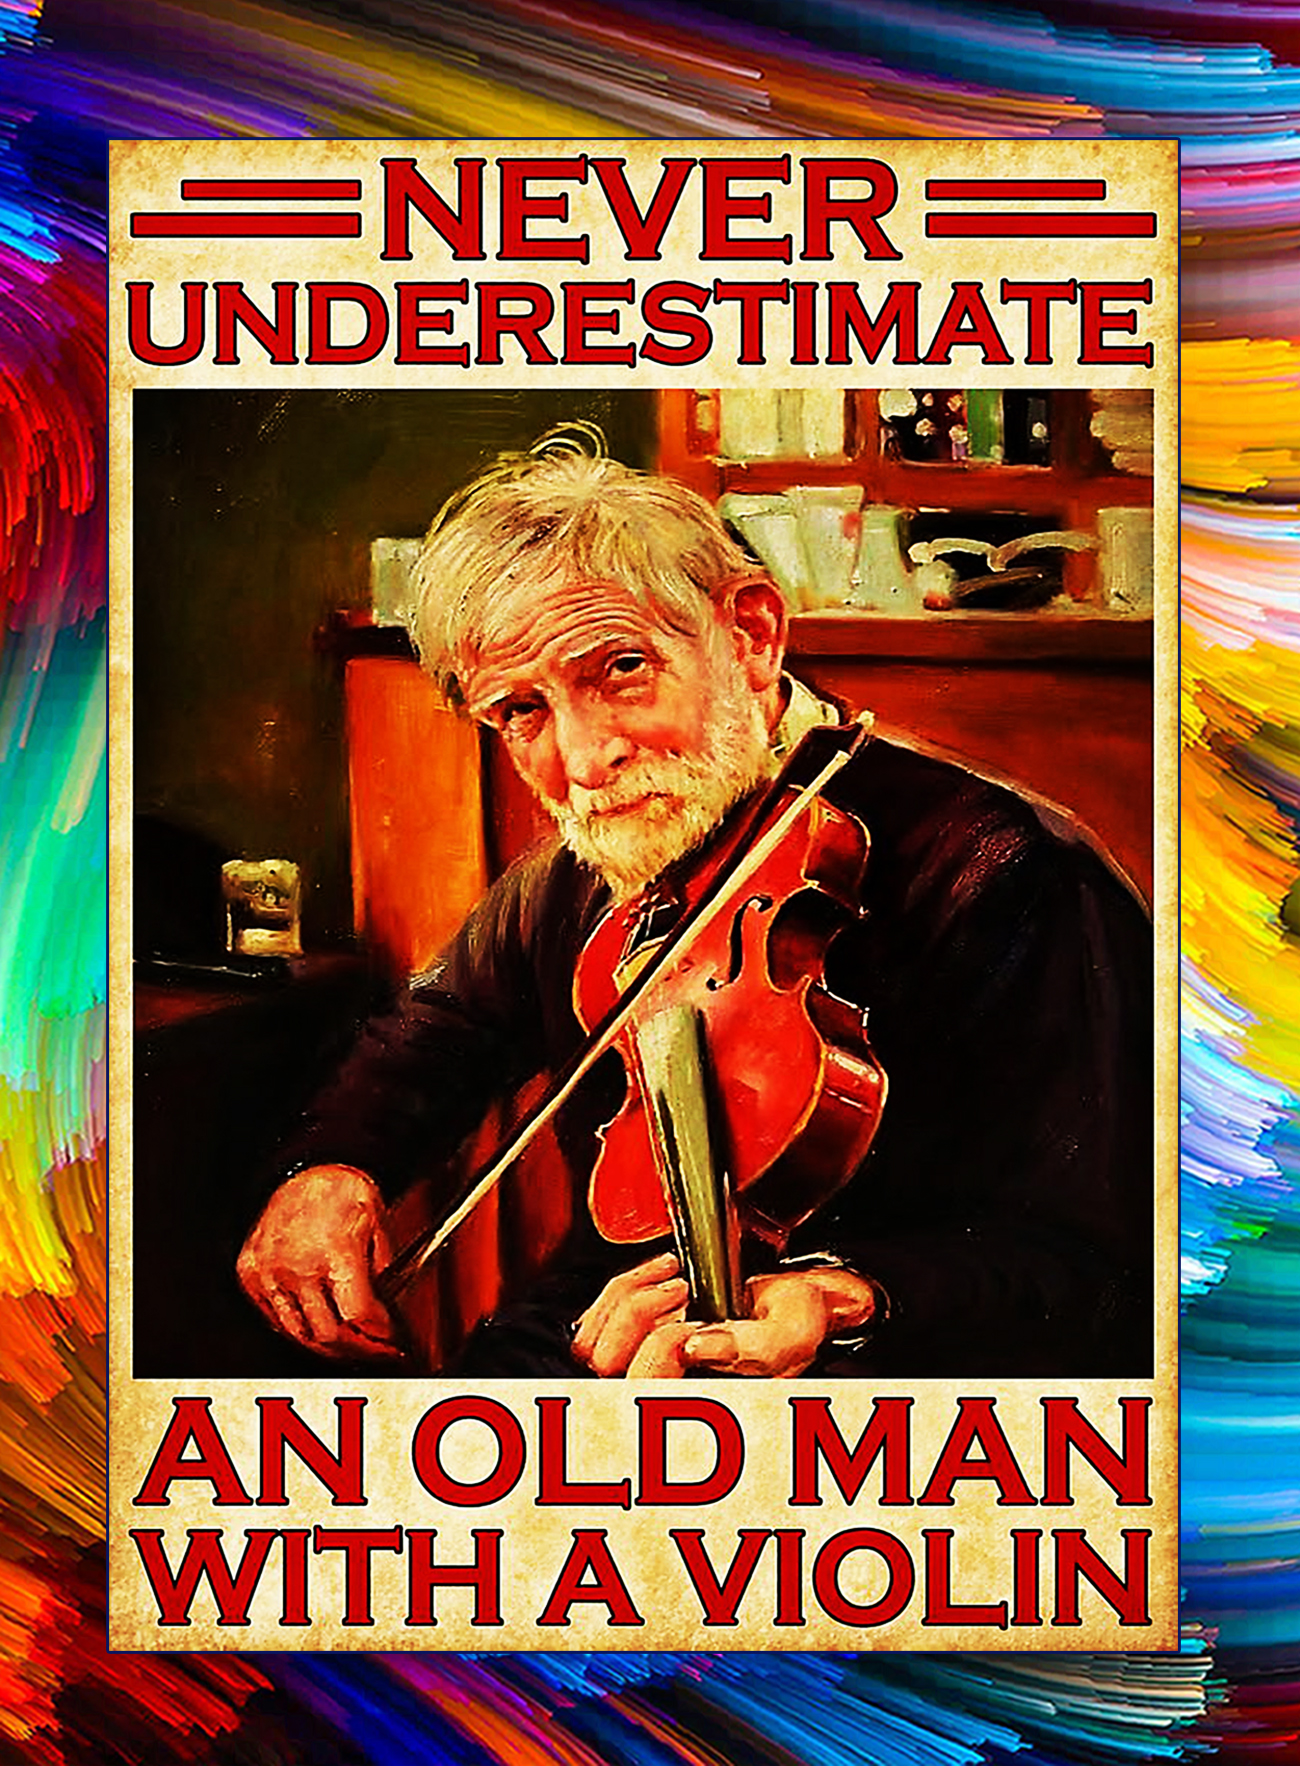 Never underestimate an old man with a violin poster - A1